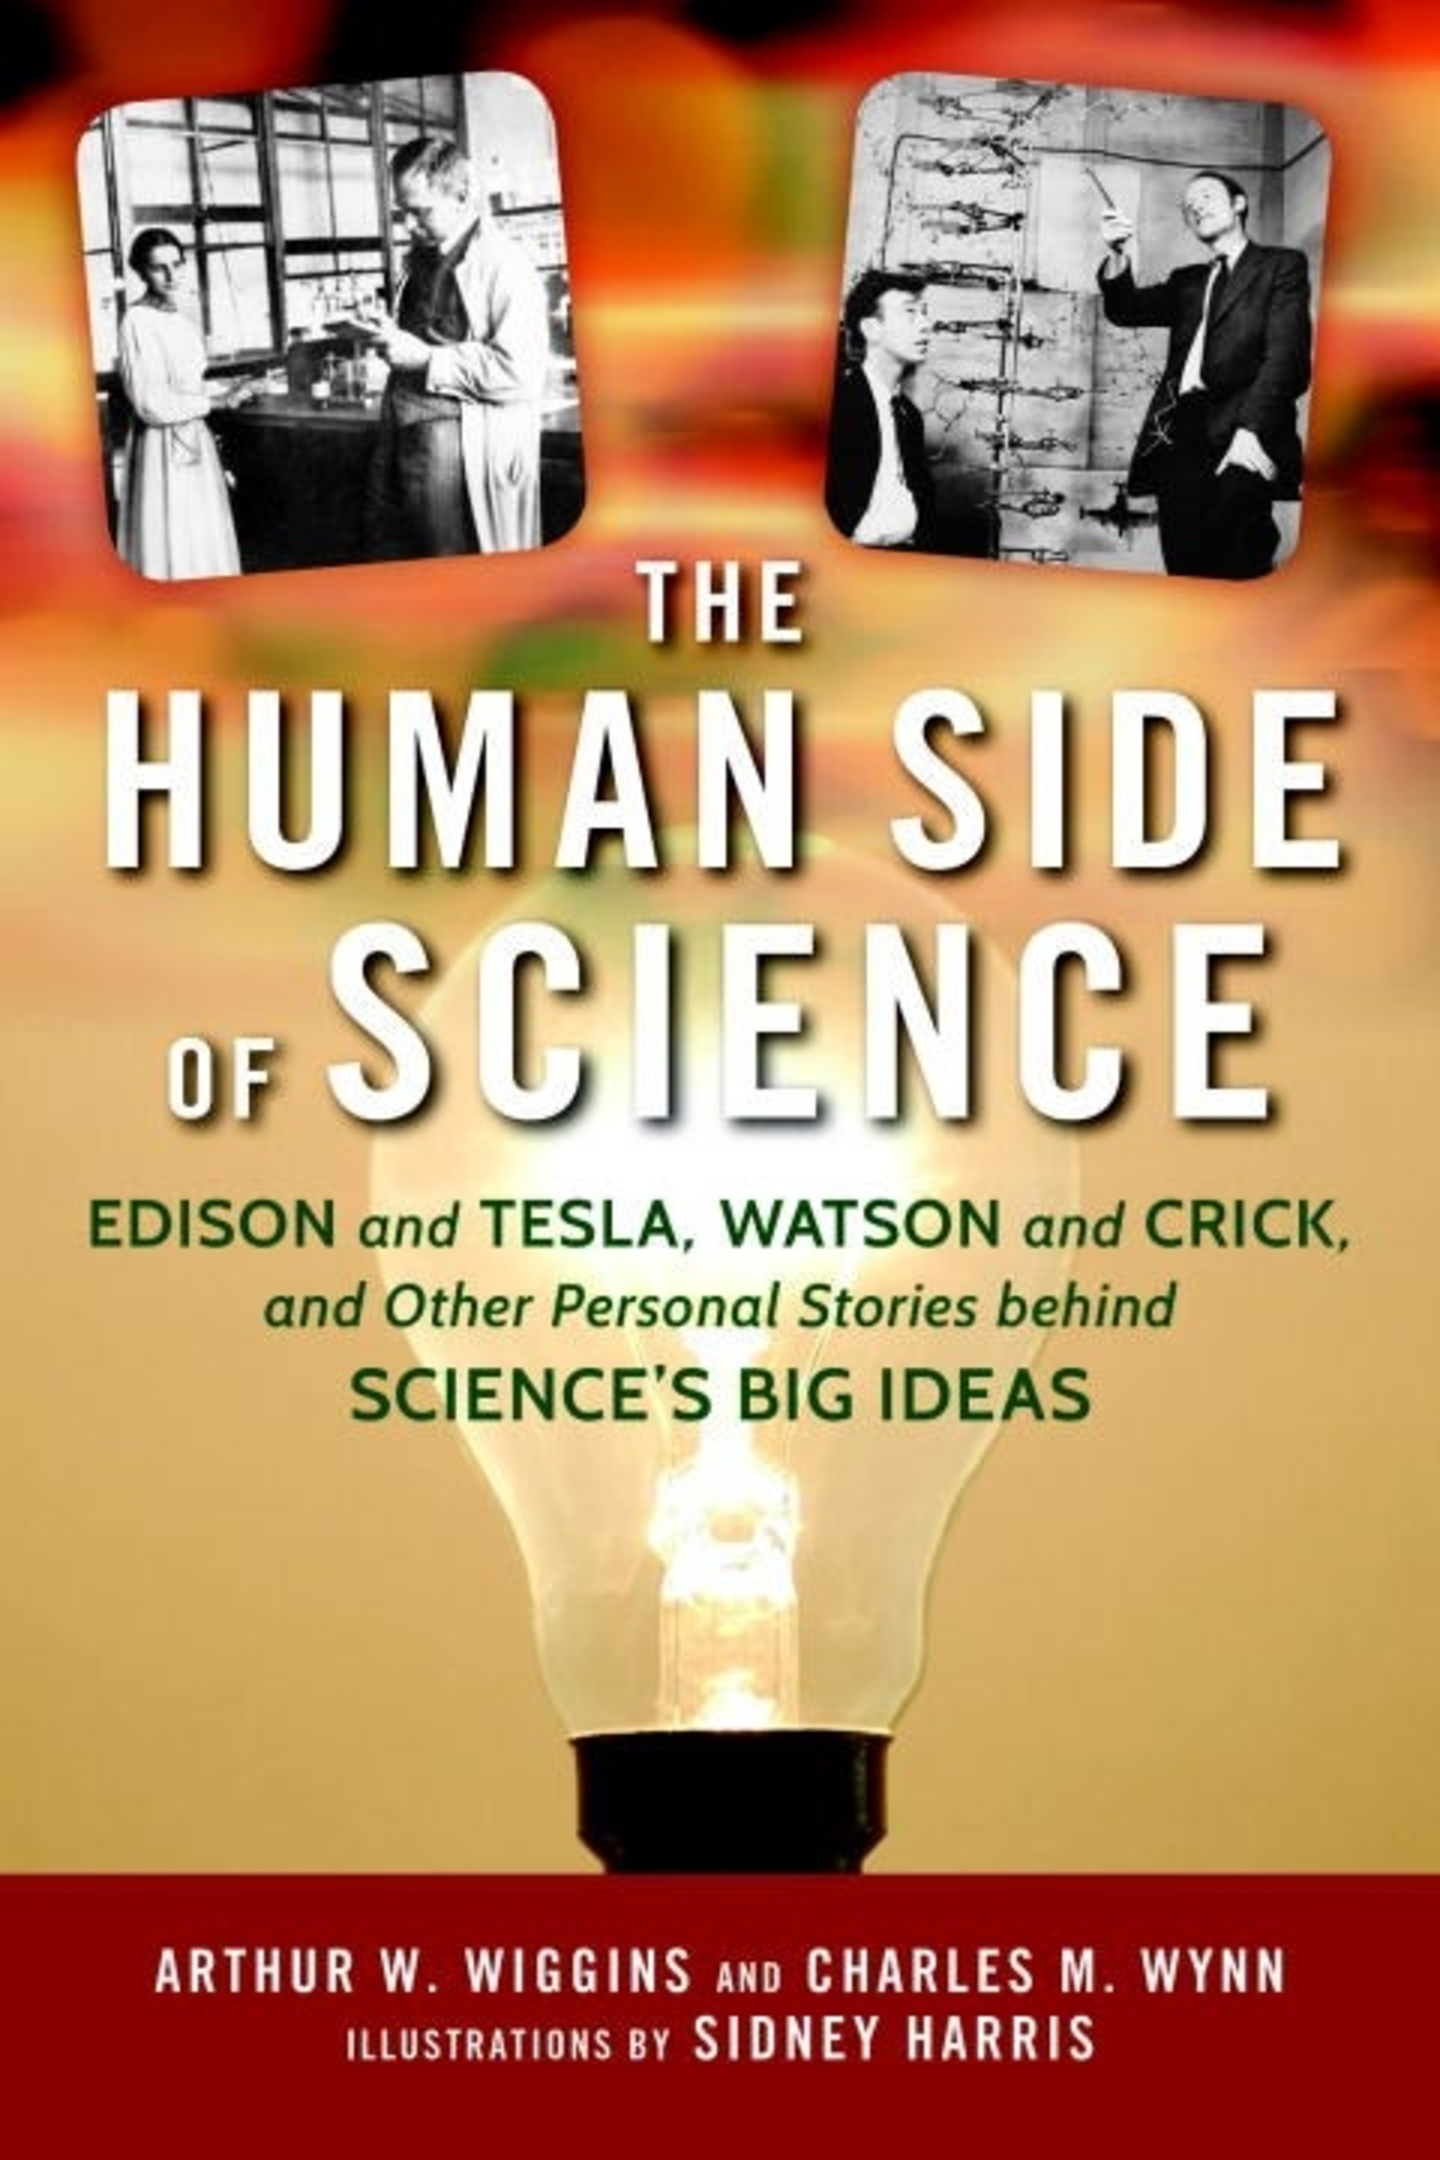 The Human Side of Science : Edison and Tesla, Watson and Crick, and Other Personal Stories behind Science's Big Ideas